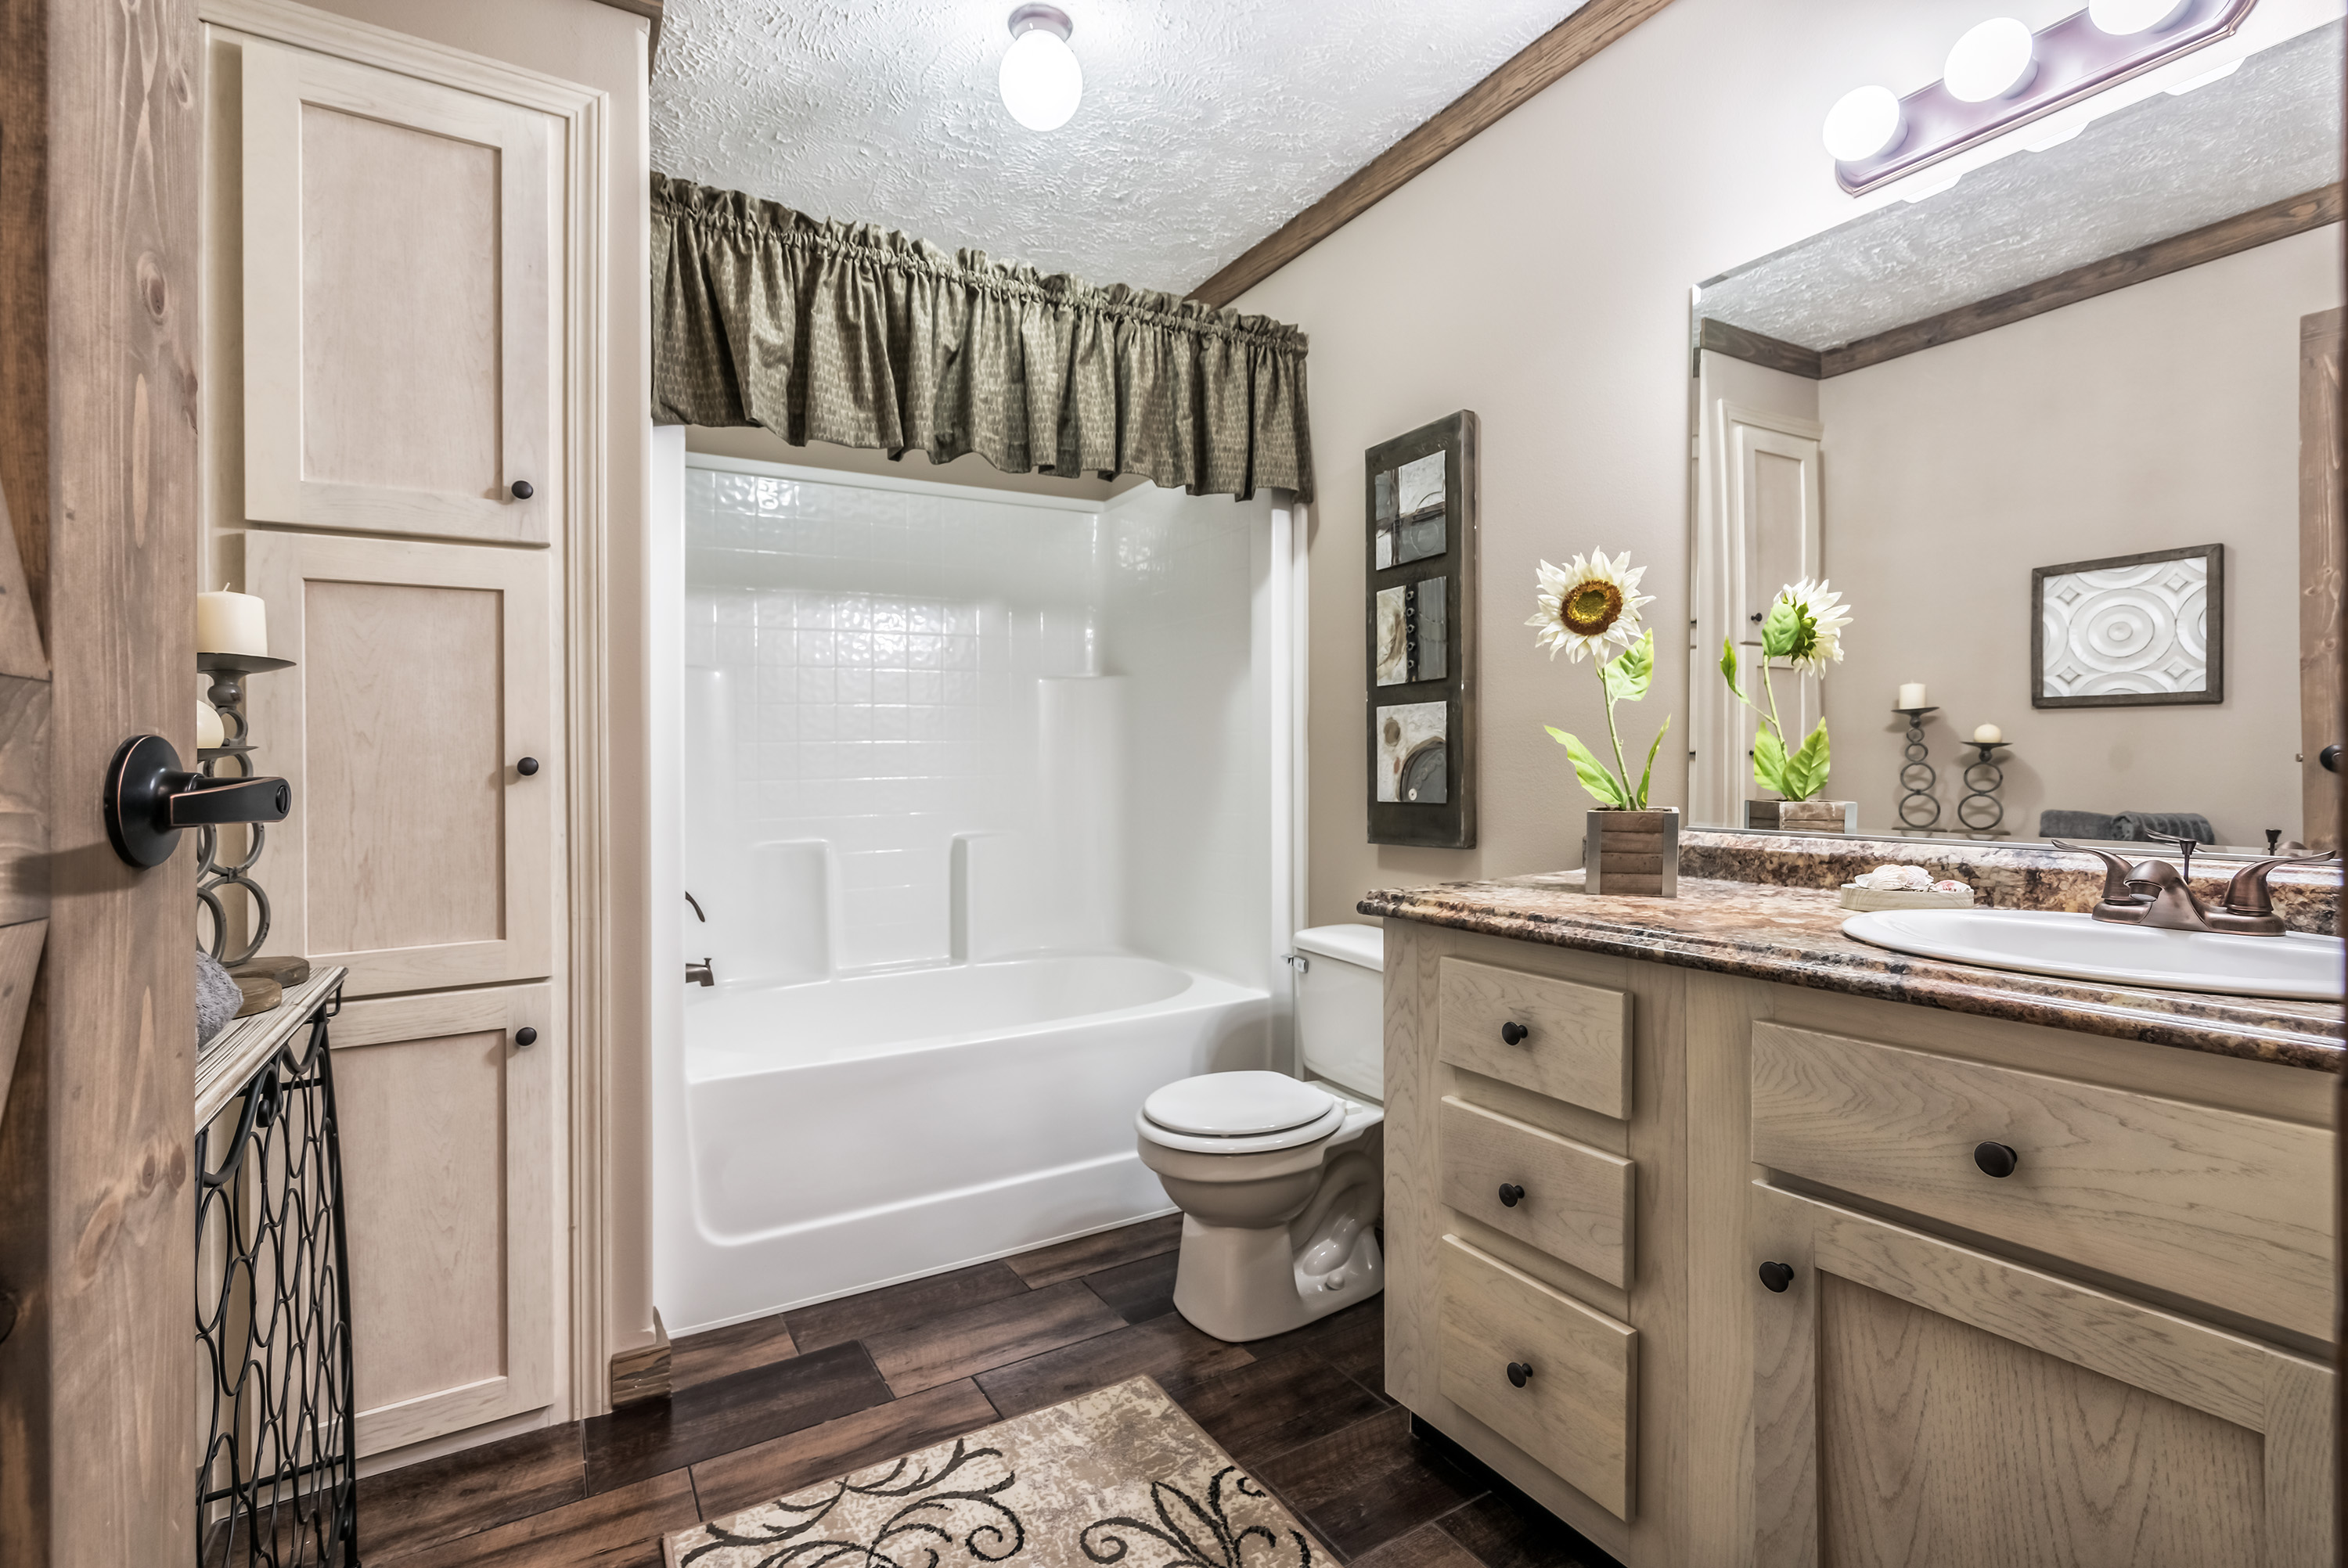 Kabco Builders | Manufactured Housing Industry on showers for trailers, showers for small bathrooms, showers for farms, showers for pets, showers for apartments, showers for new construction, showers for assisted living, showers for boats, showers for rv parks, showers for campers, showers for rv's,